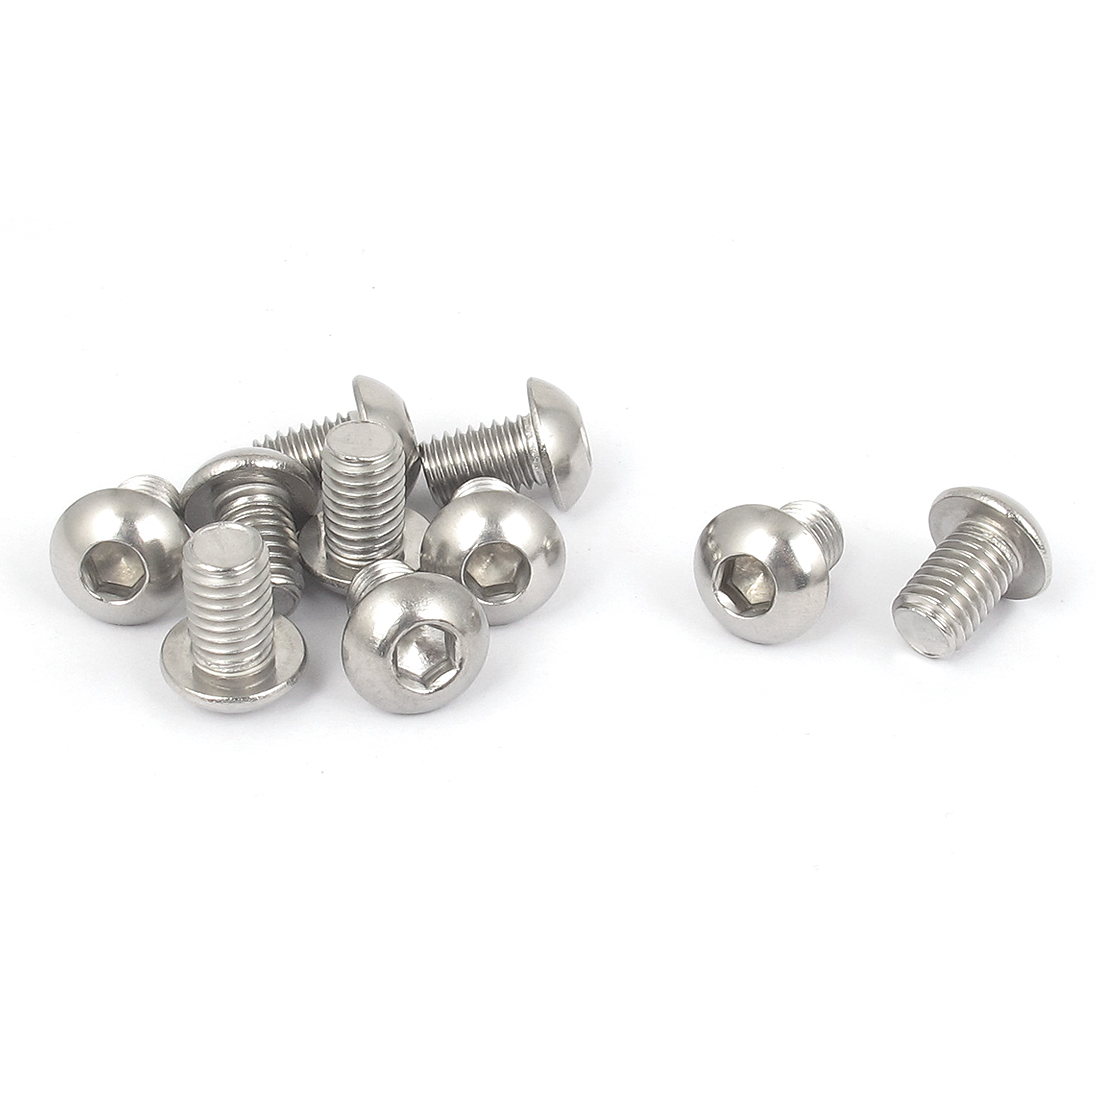 M8x12mm 304 Stainless Steel Hex Socket Machine Round Head Screw Bolts 10PCS